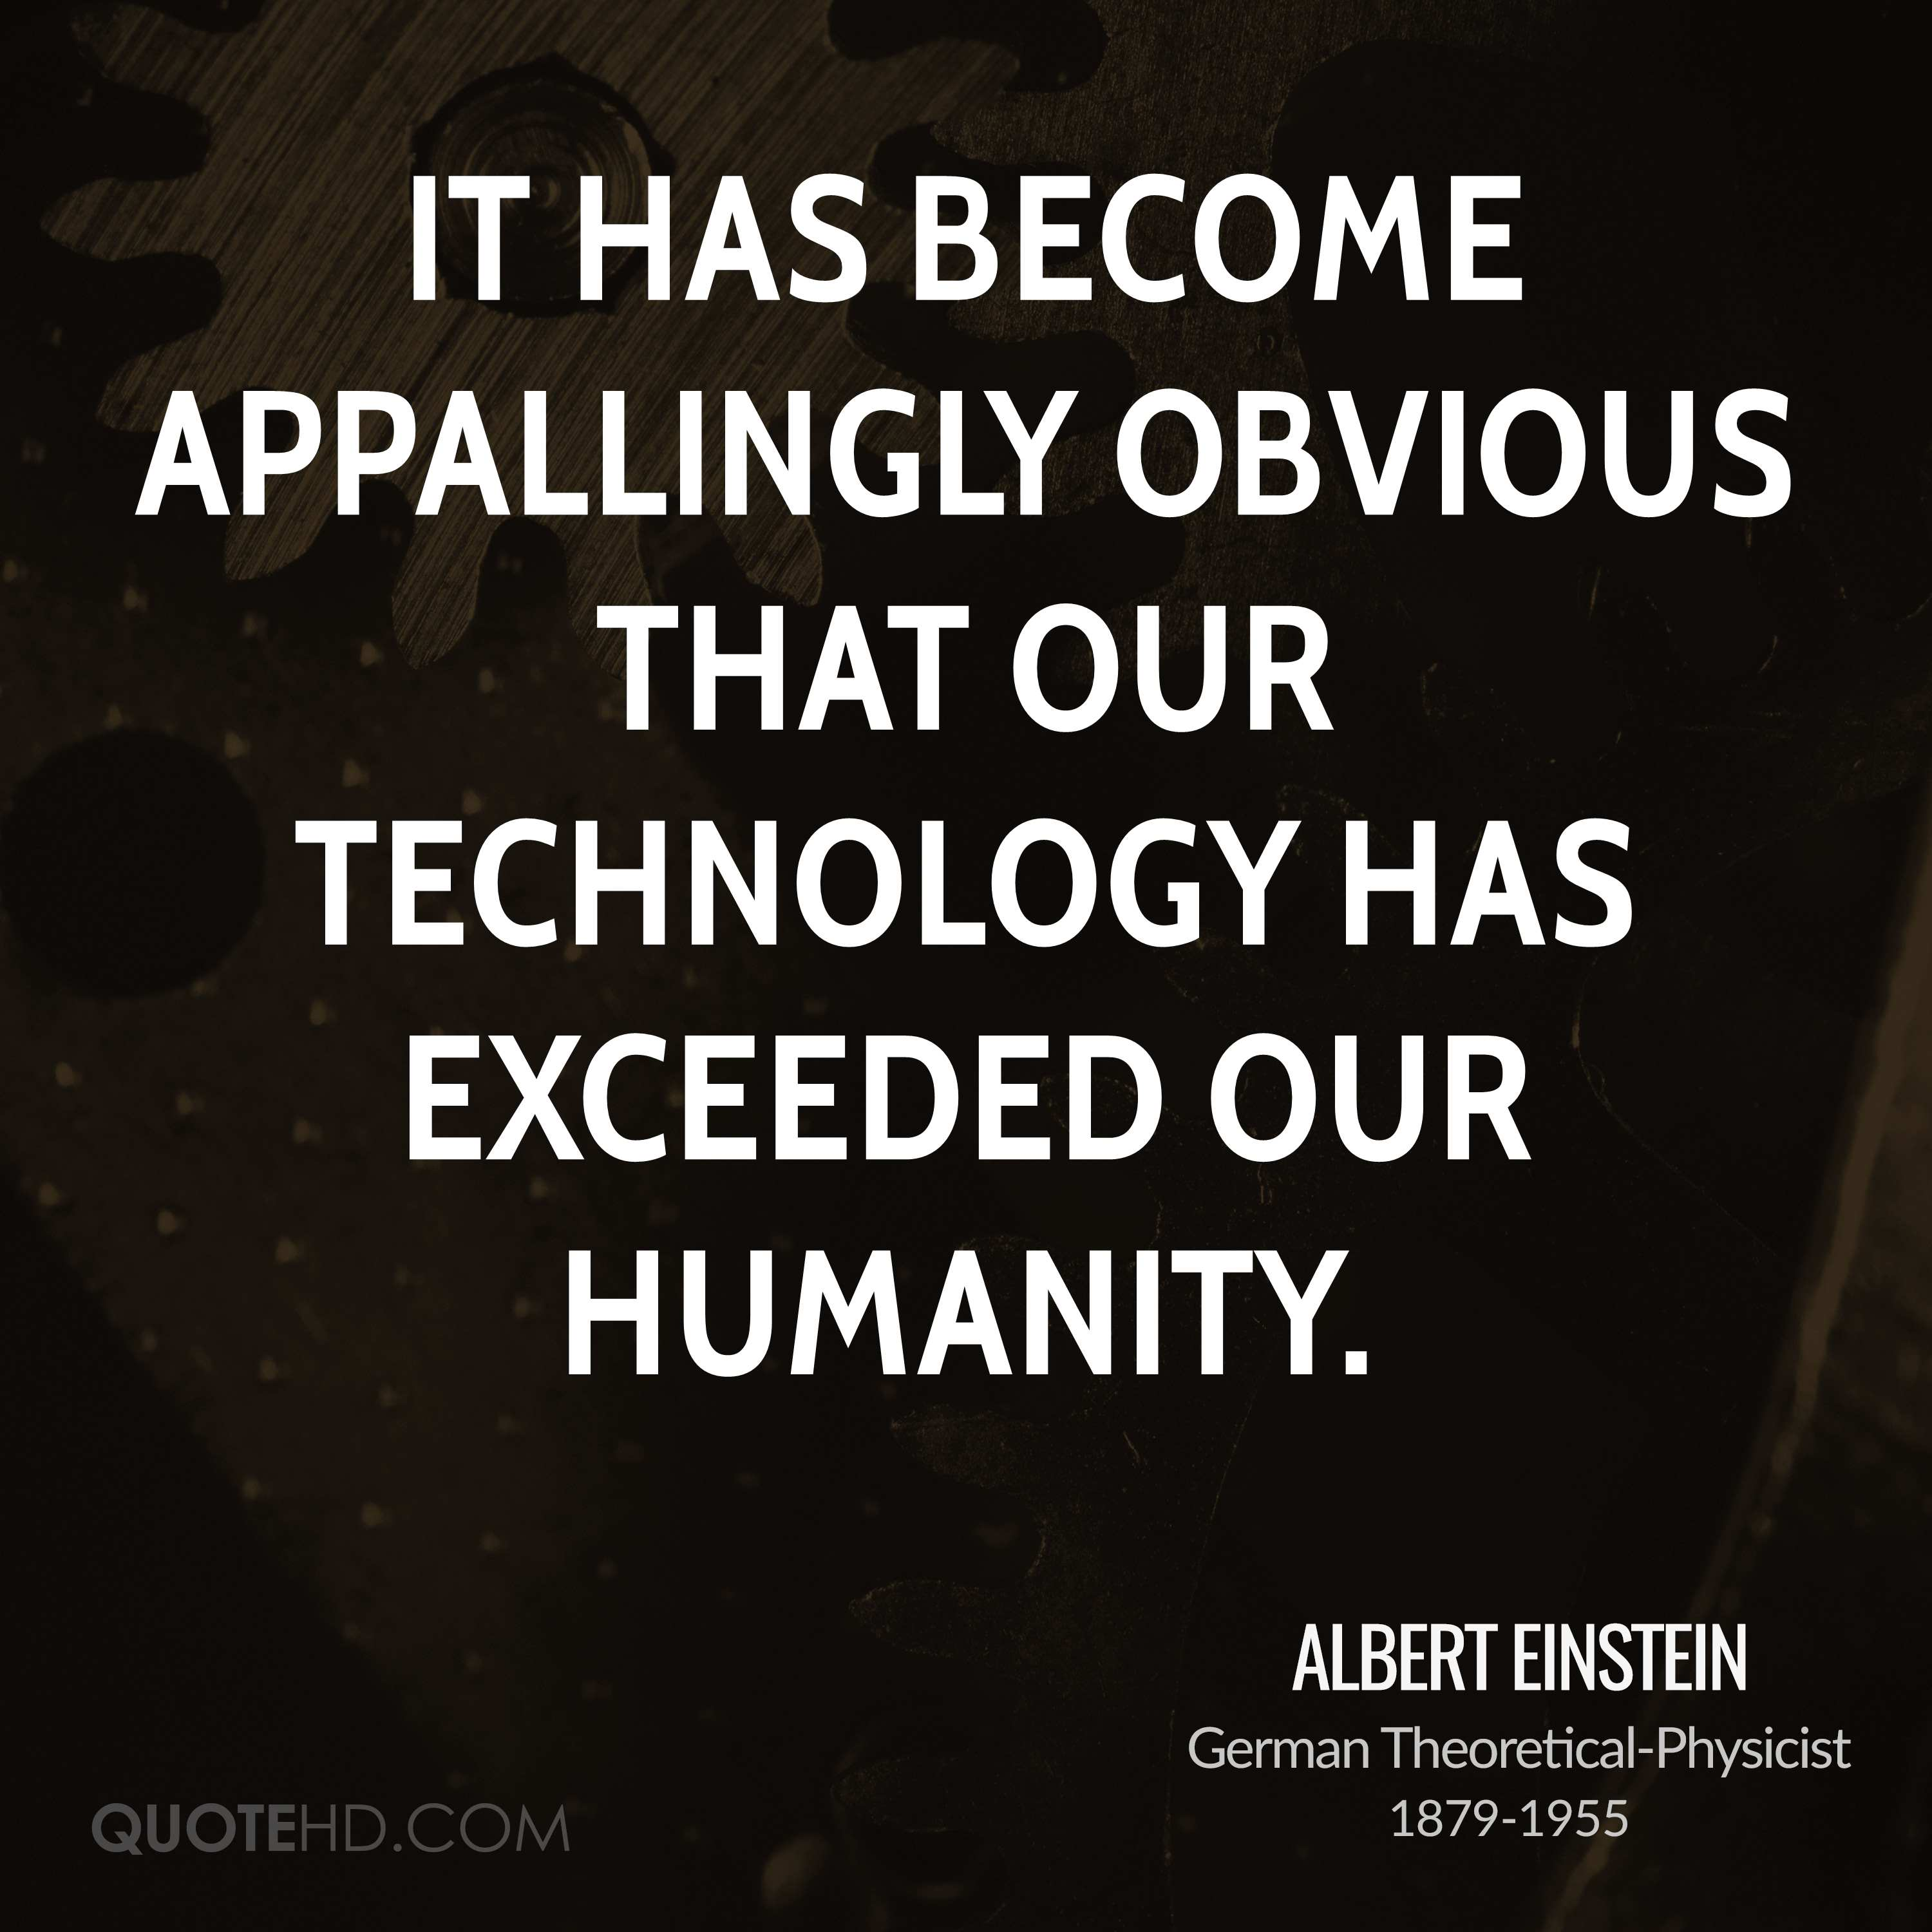 Quotes On Technology: Albert Einstein Technology Quotes